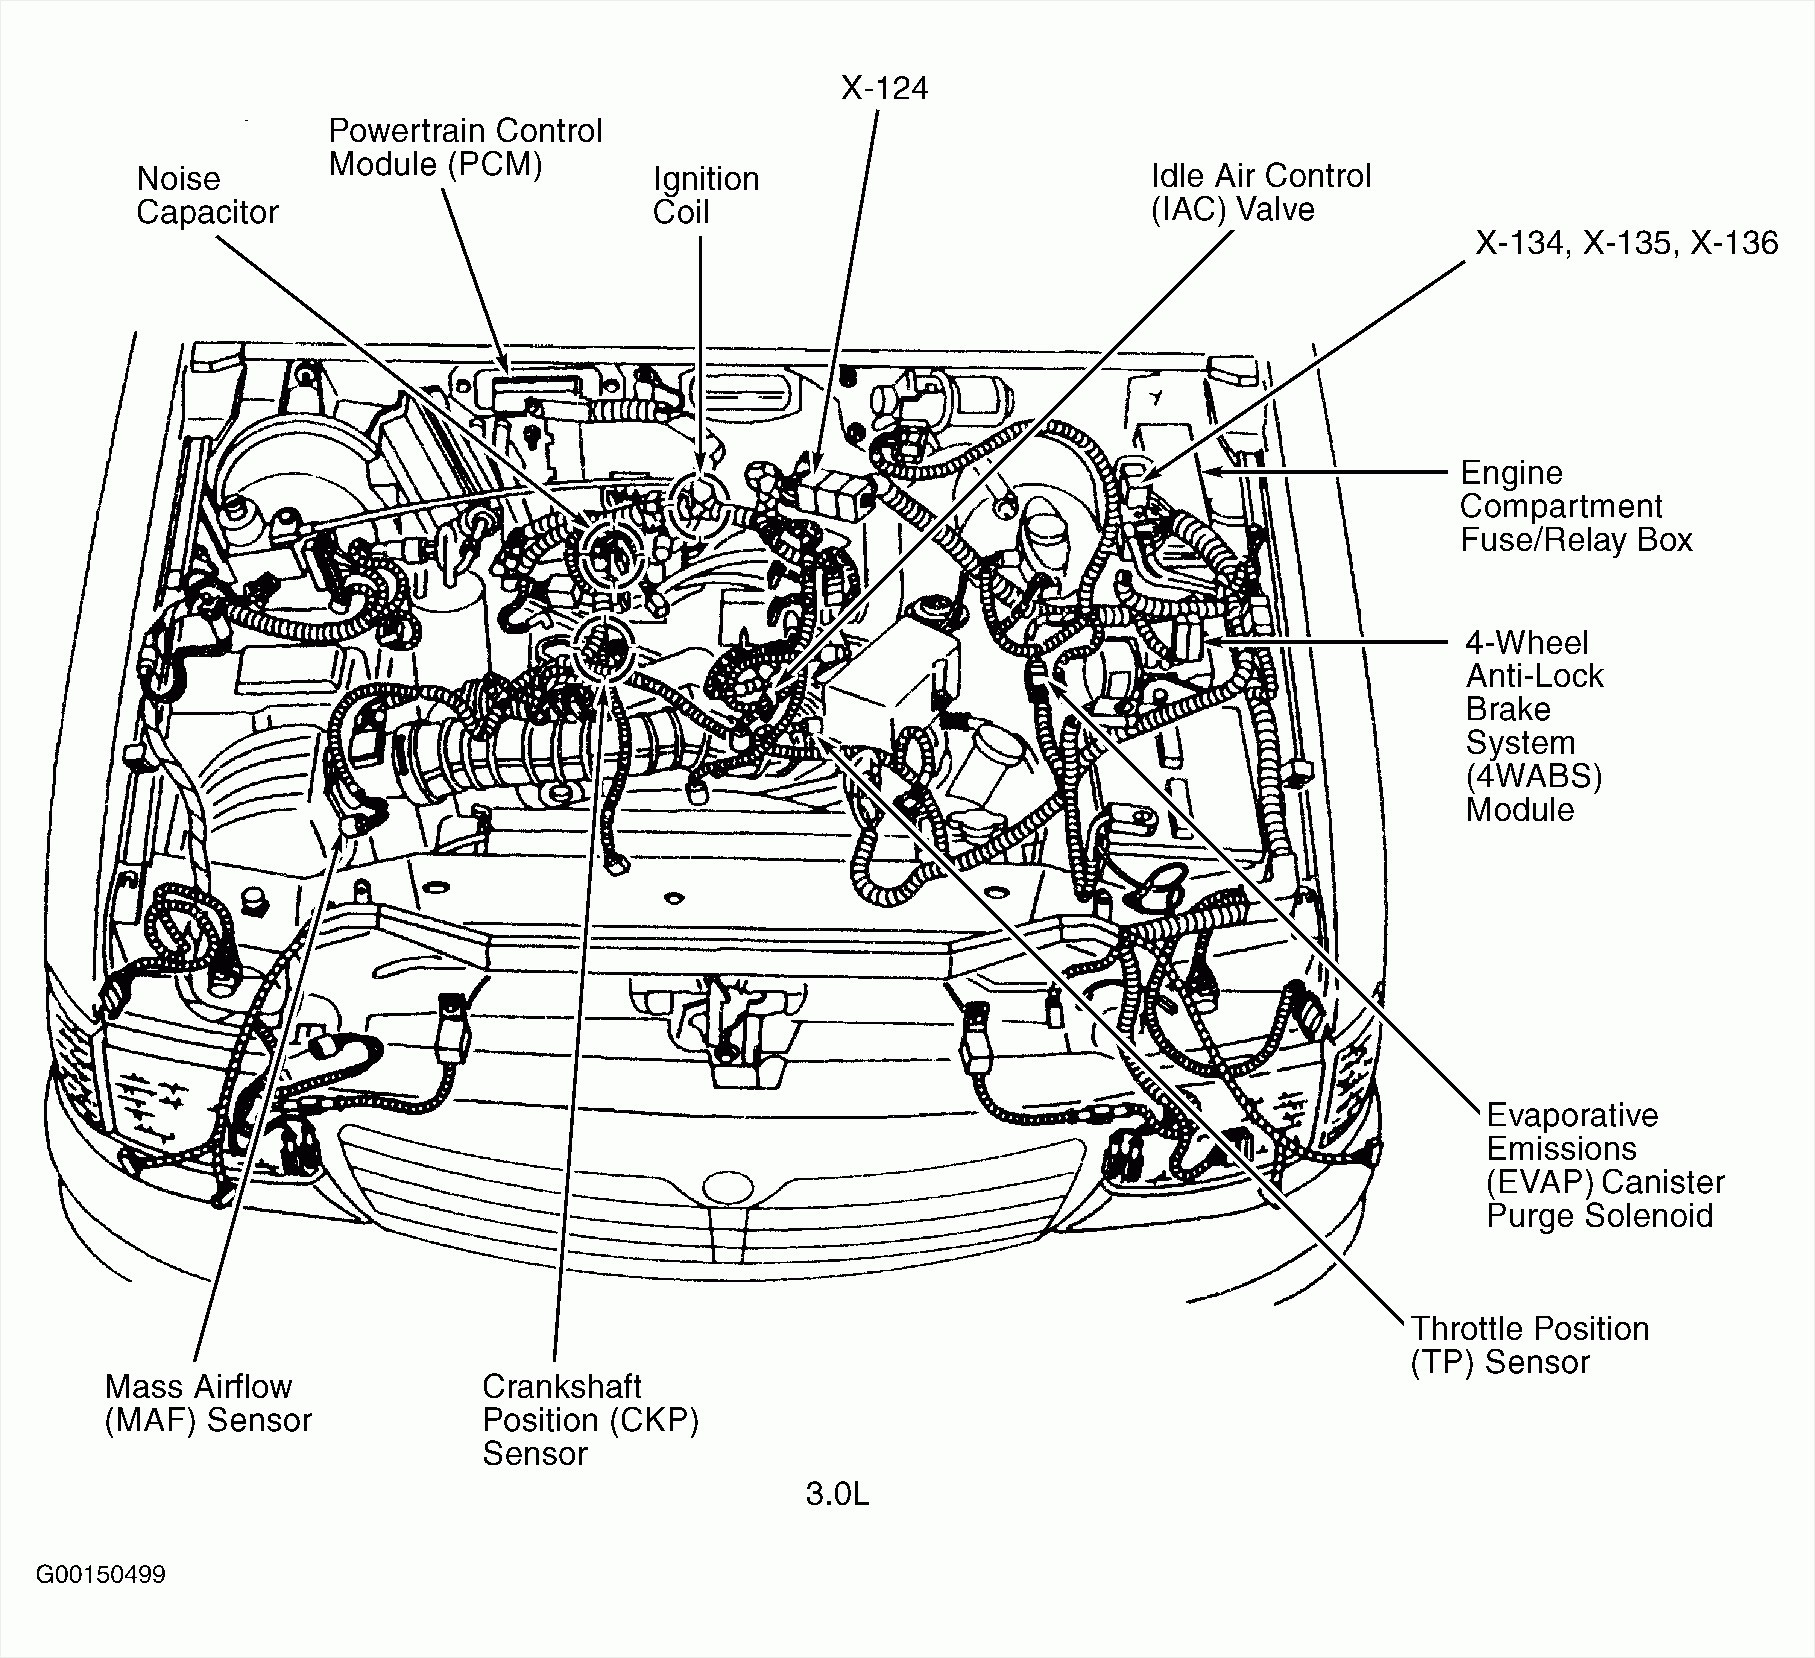 2000 alero engine diagram diagram 1998 oldsmobile intrigue engine diagram toyota tundra 2002  diagram 1998 oldsmobile intrigue engine